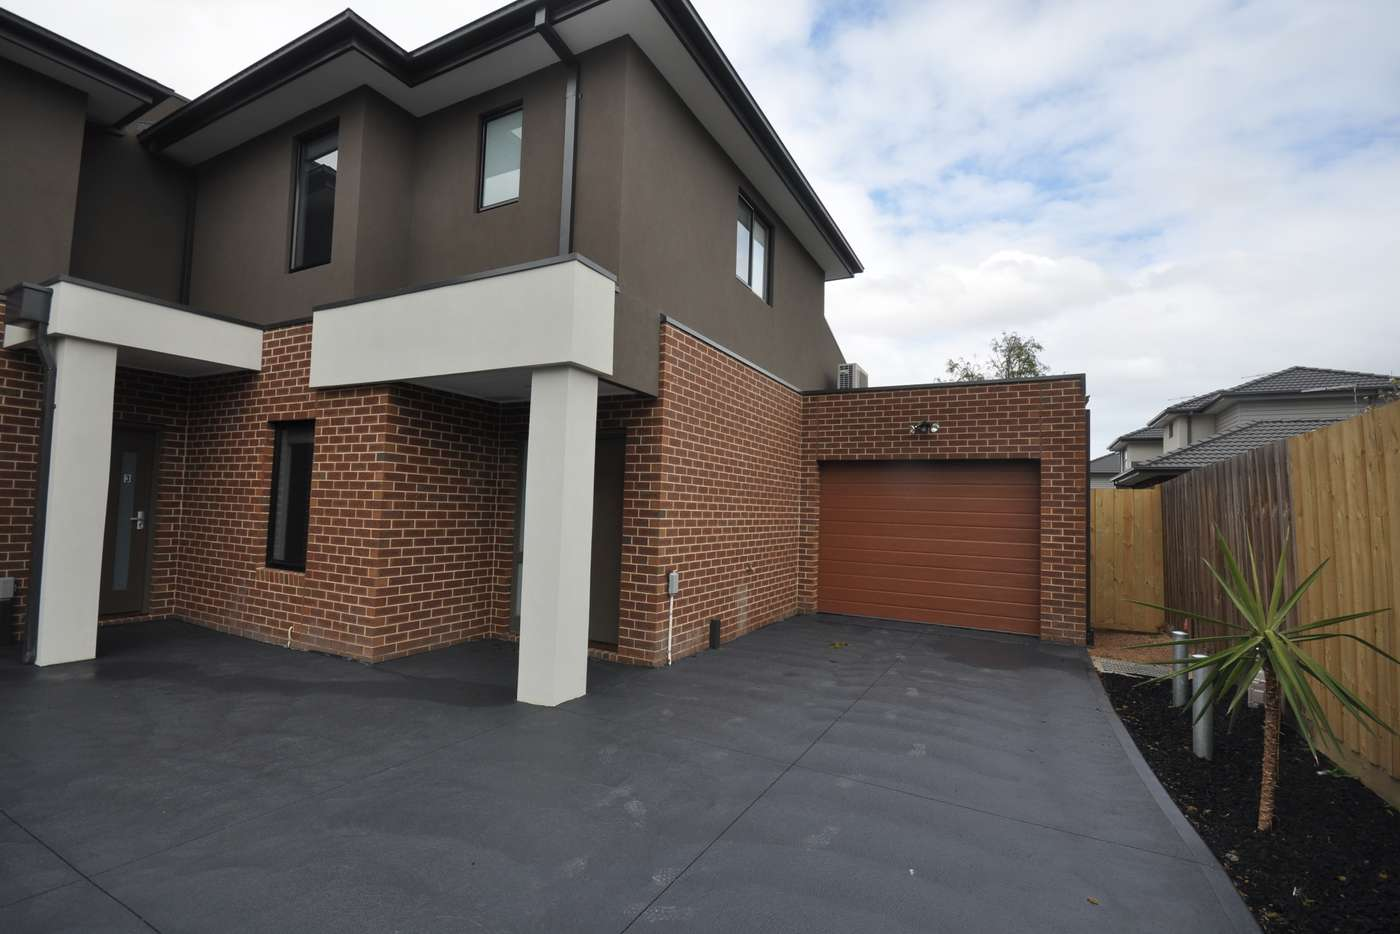 Main view of Homely townhouse listing, 4/19 Prospect Street, Glenroy VIC 3046